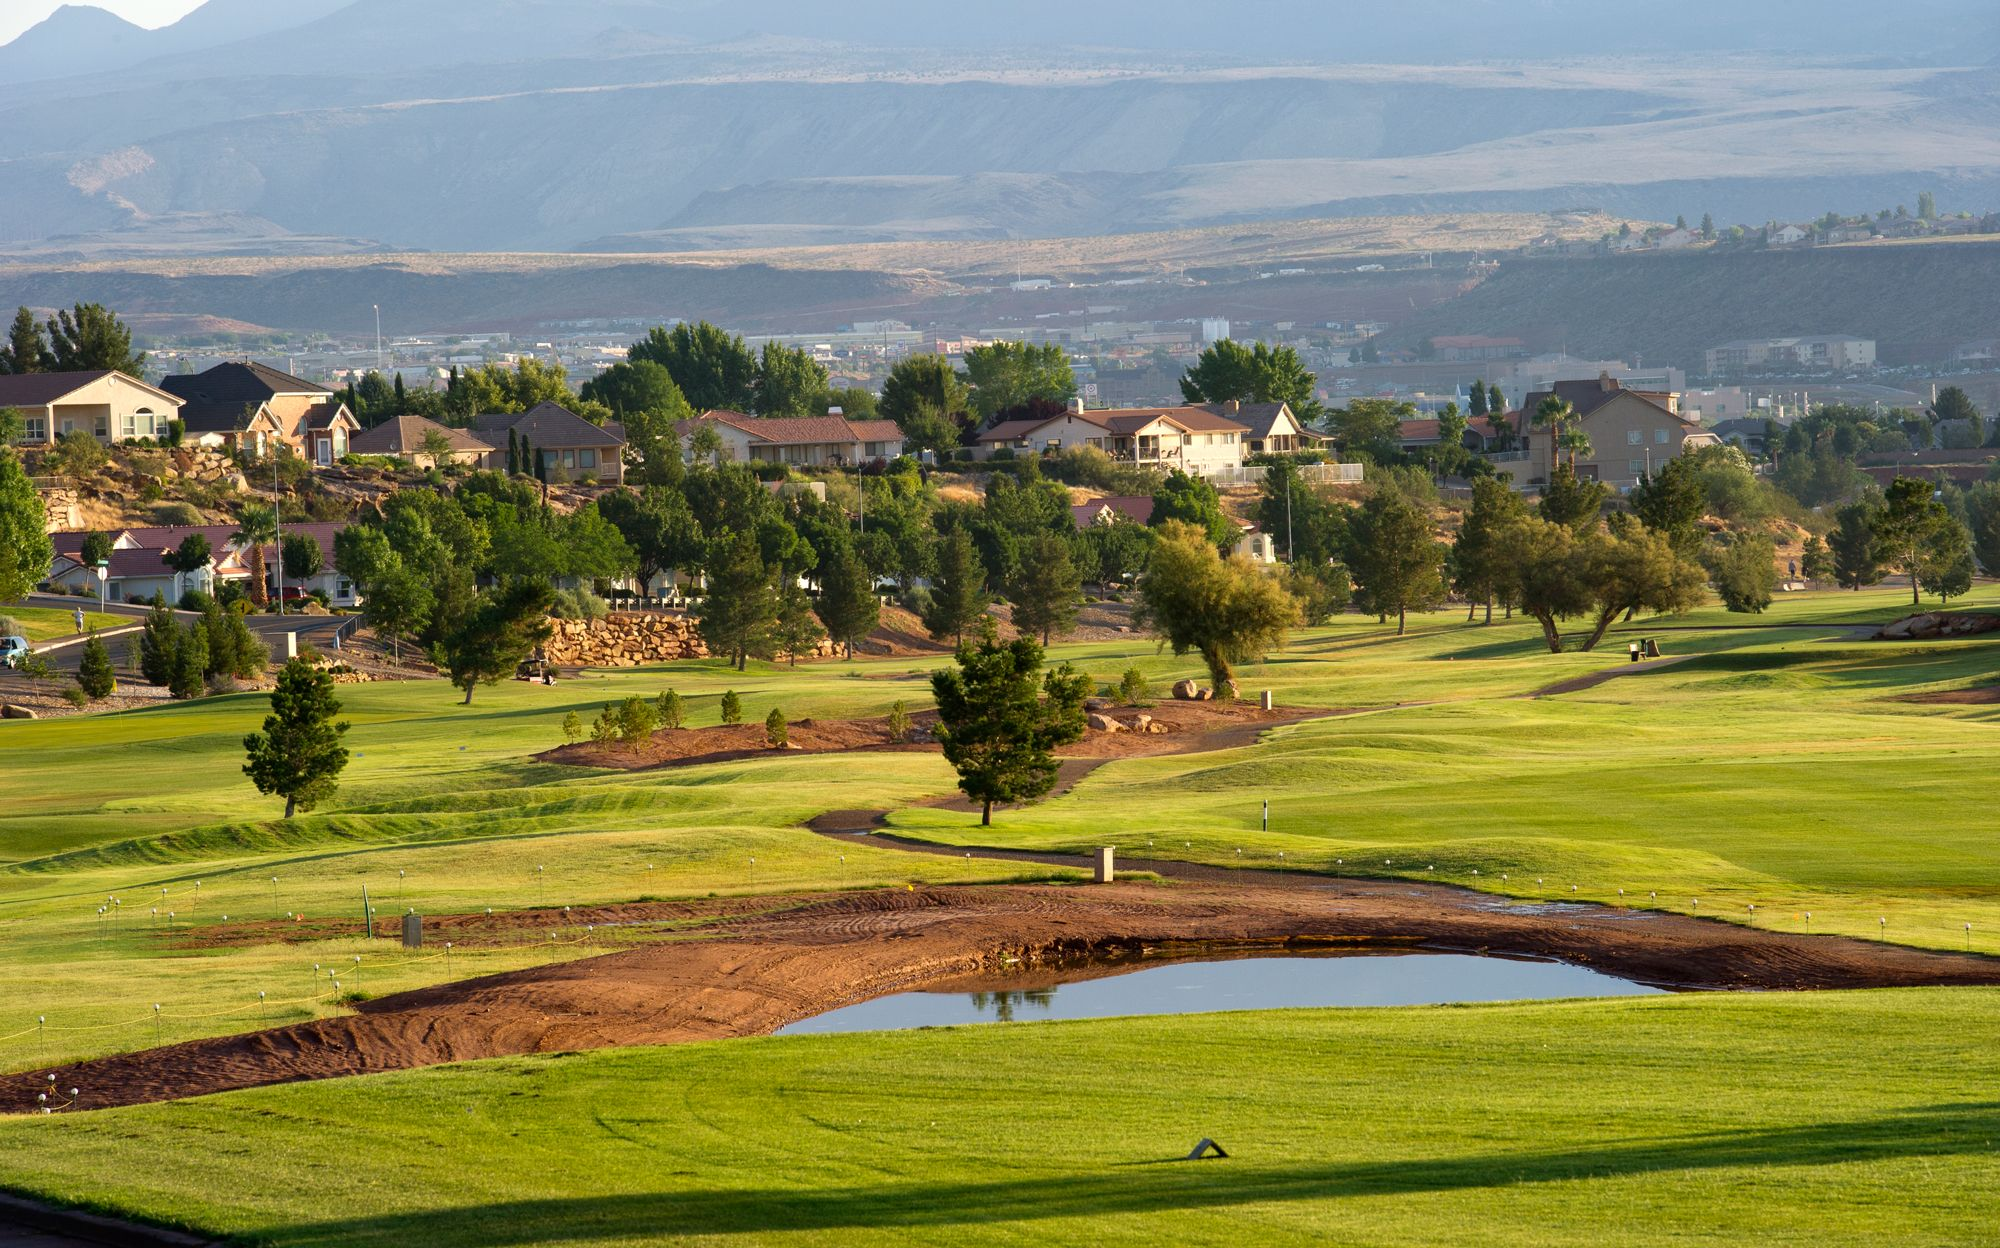 St George Golf Club In St George Utah Is Our Golfcourseoftheday What A View Rock Bottom Golf Rockbottomgolf Golf Courses City Golf Discount Golf